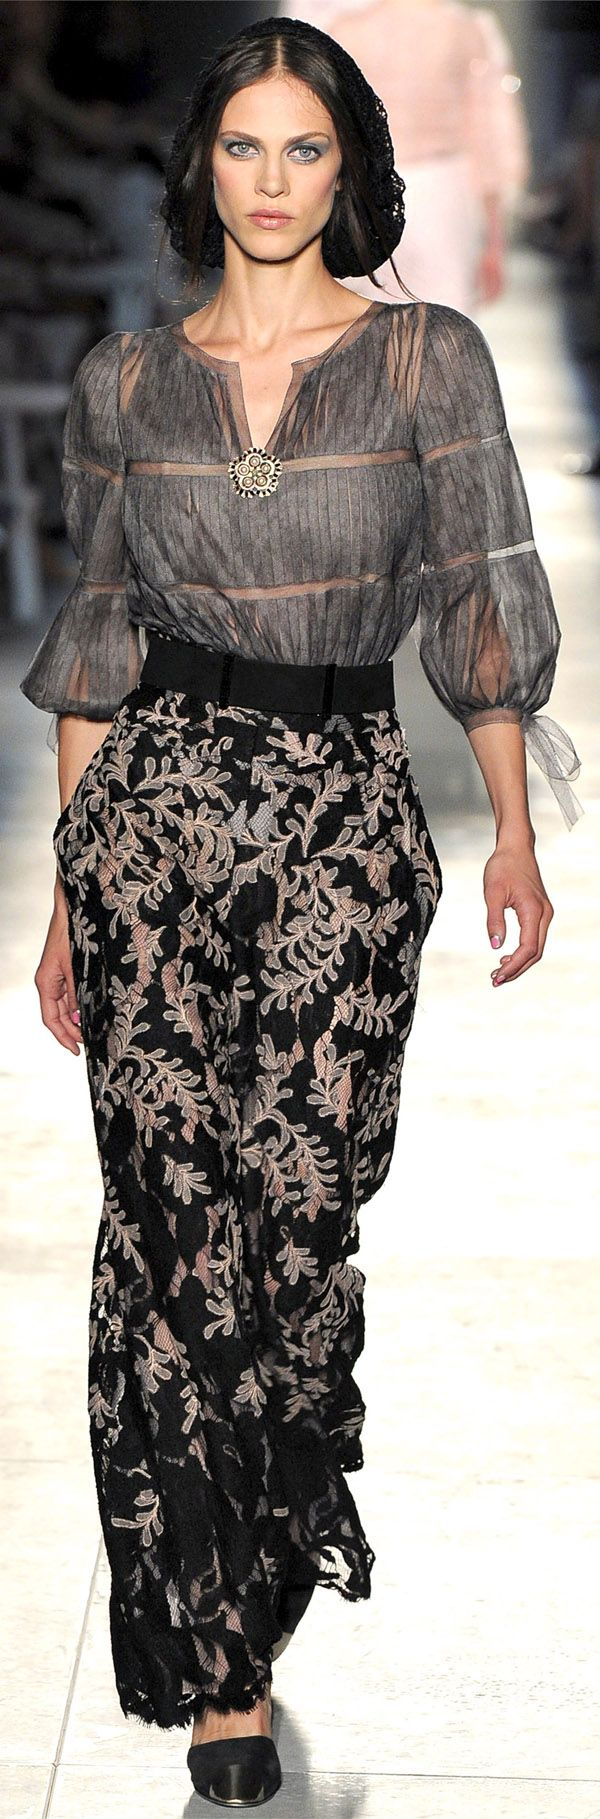 ✜ Chanel | Paris | Winter 2013 ✜ http://www.vogue.it/en/shows/show/haute-couture-fall-winter-2012/chanel...the bloque..